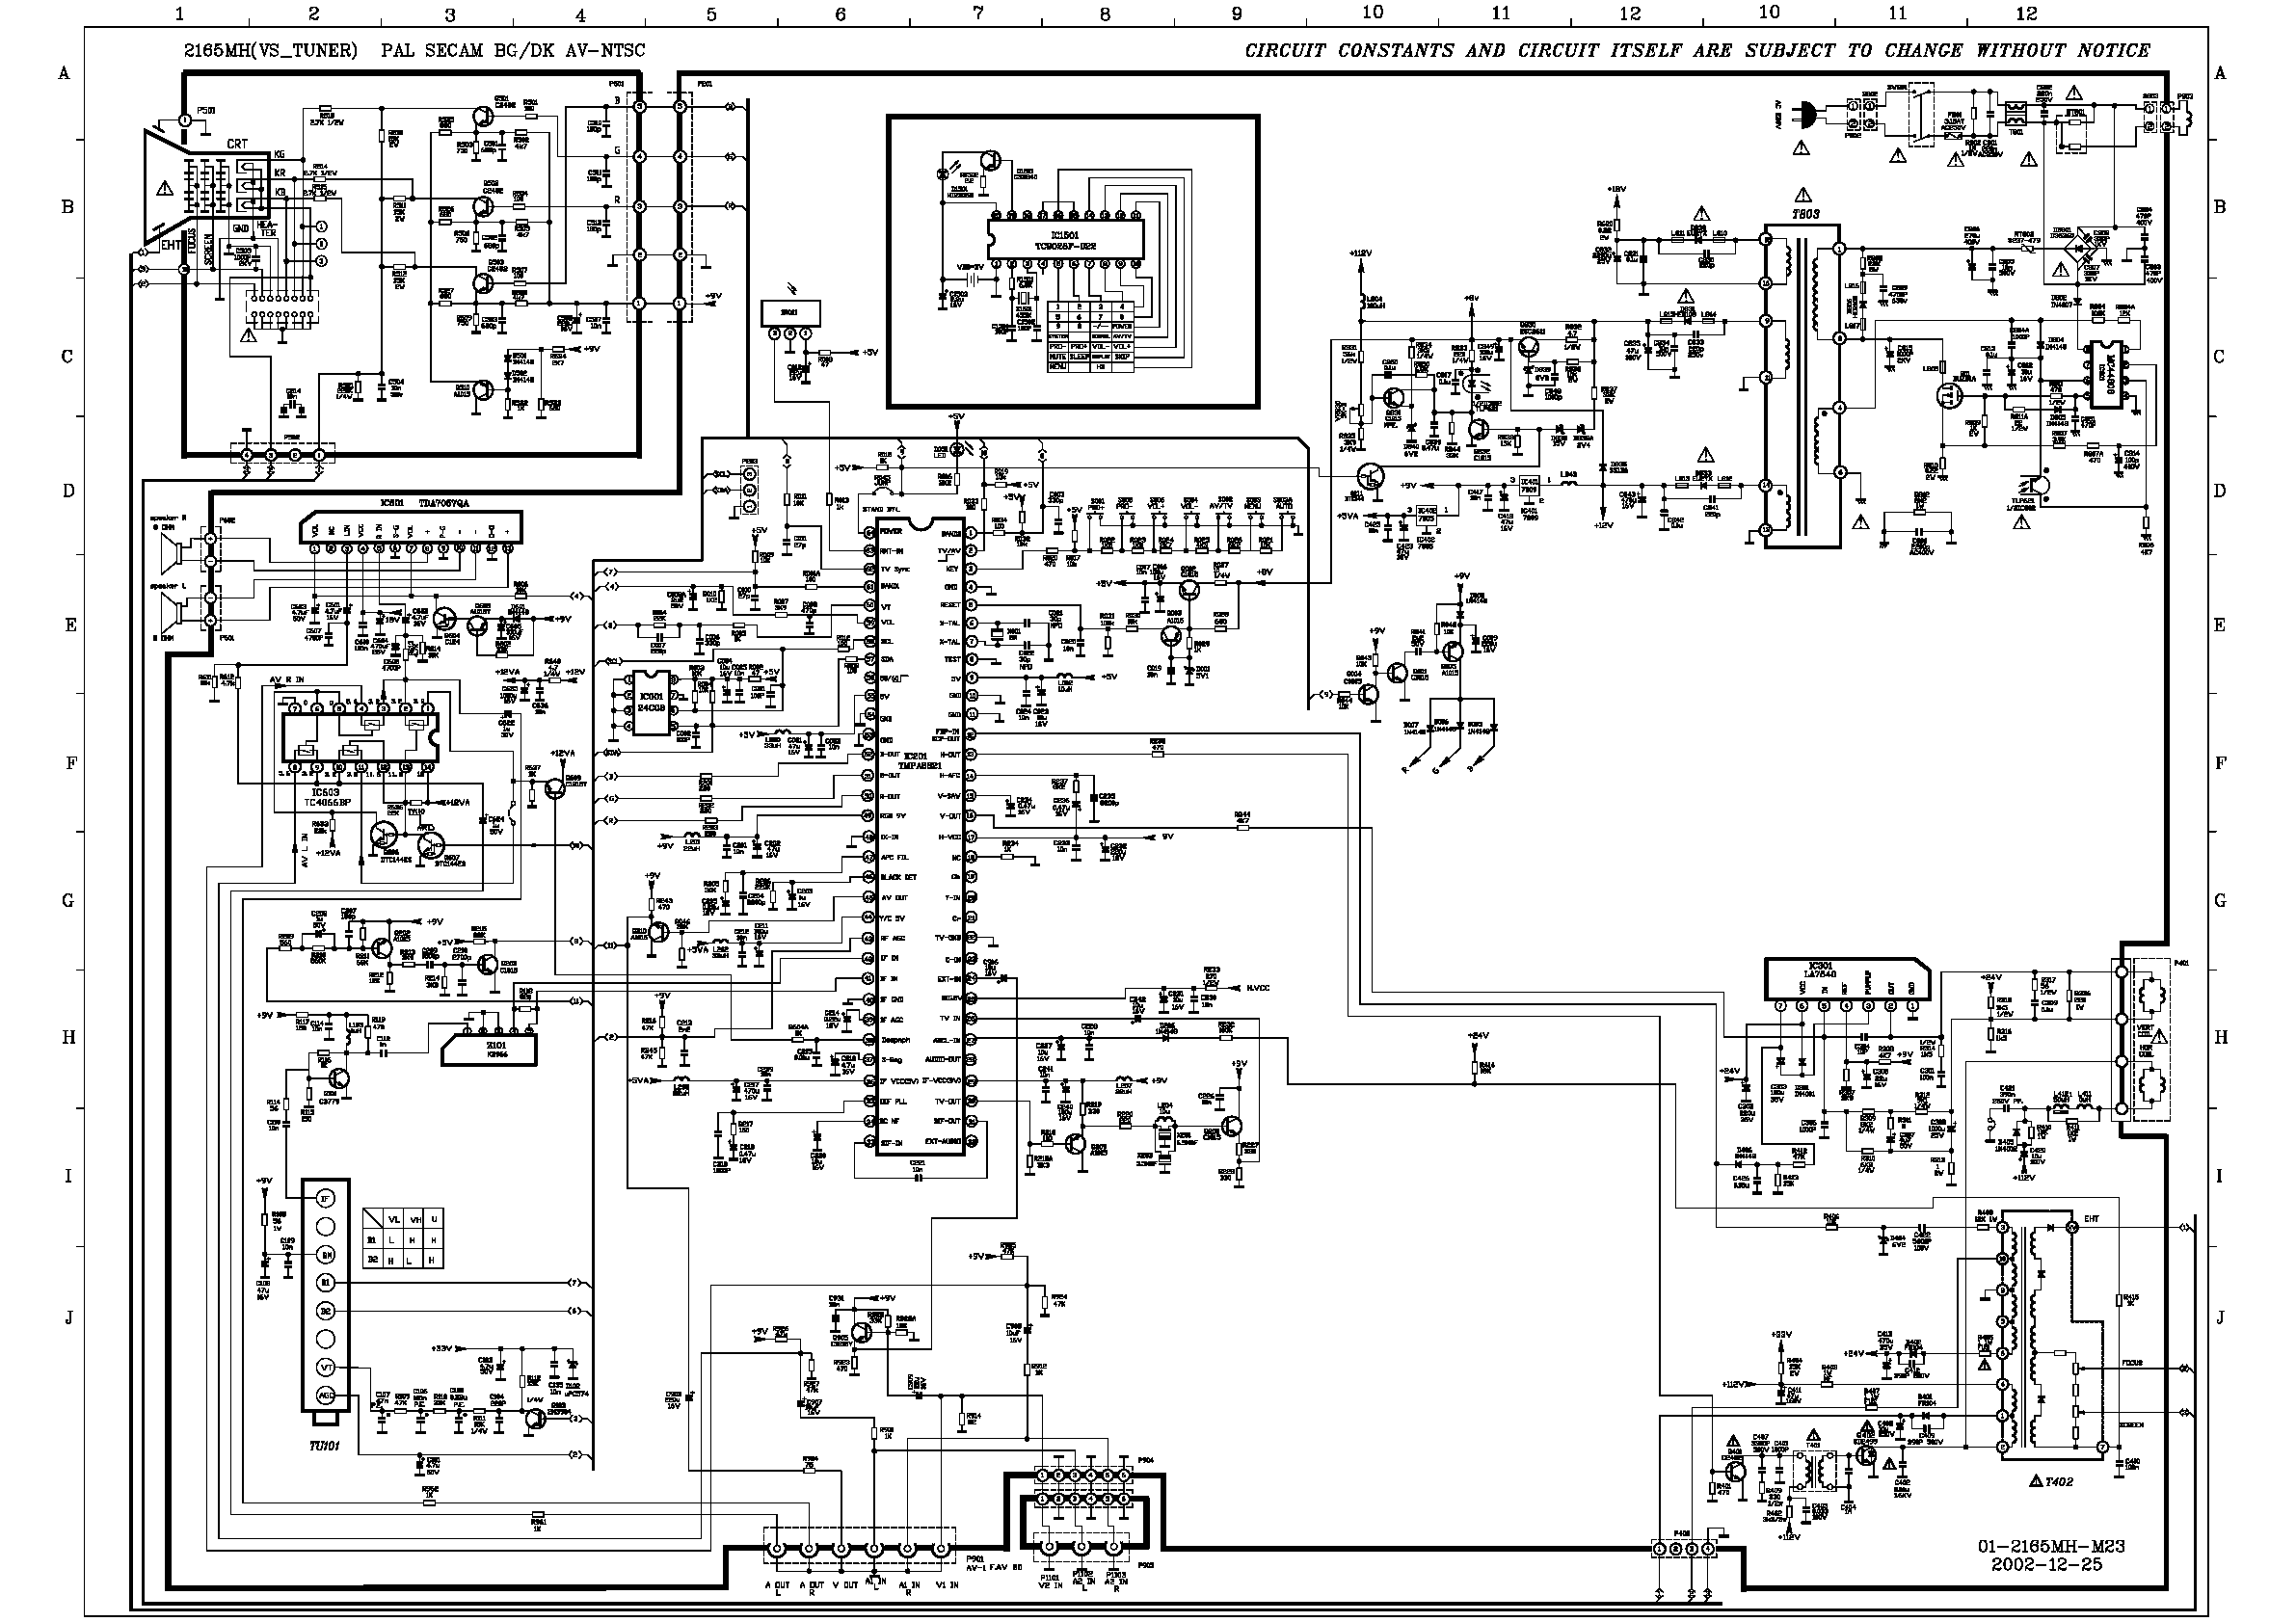 2014 maycar wiring diagram page 60 car circuit page 3 : automotive circuits :: next.gr fuse layoutcar wiring diagram page 93